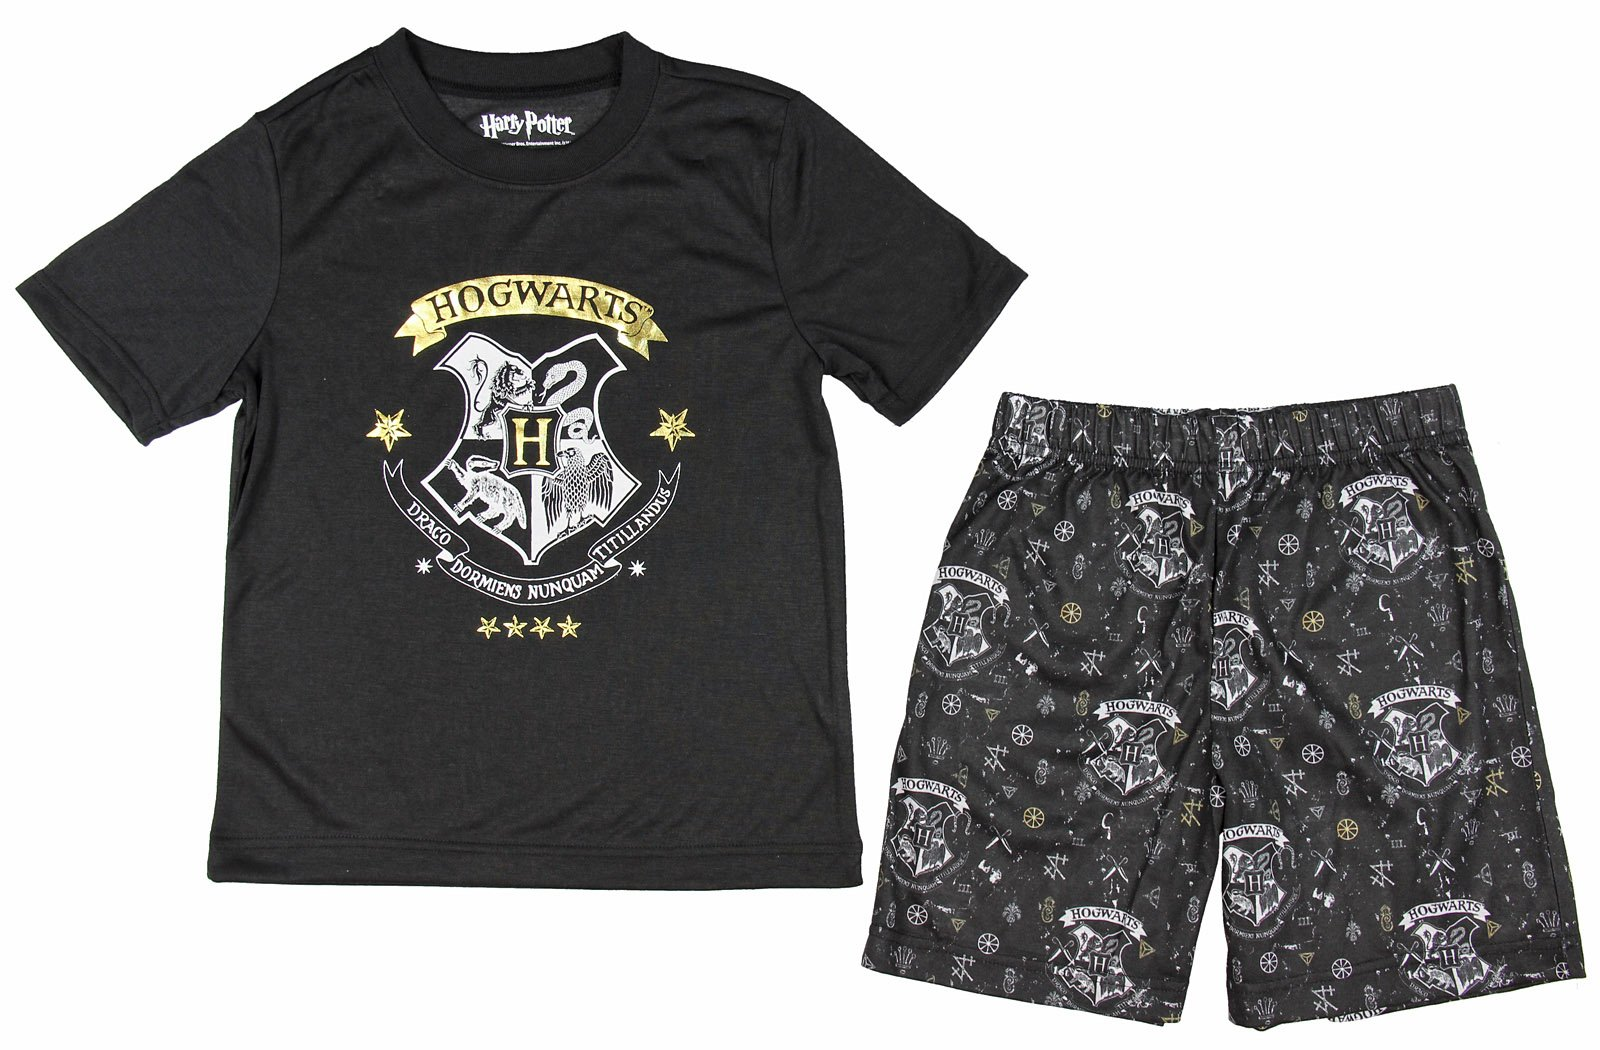 Harry Potter Big Boys' 'Hogwarts Draco Magic Crest Gryffindor, Slytherin, Hufflepuff Ravenclaw' Pajama Short Set, Black, 14/16